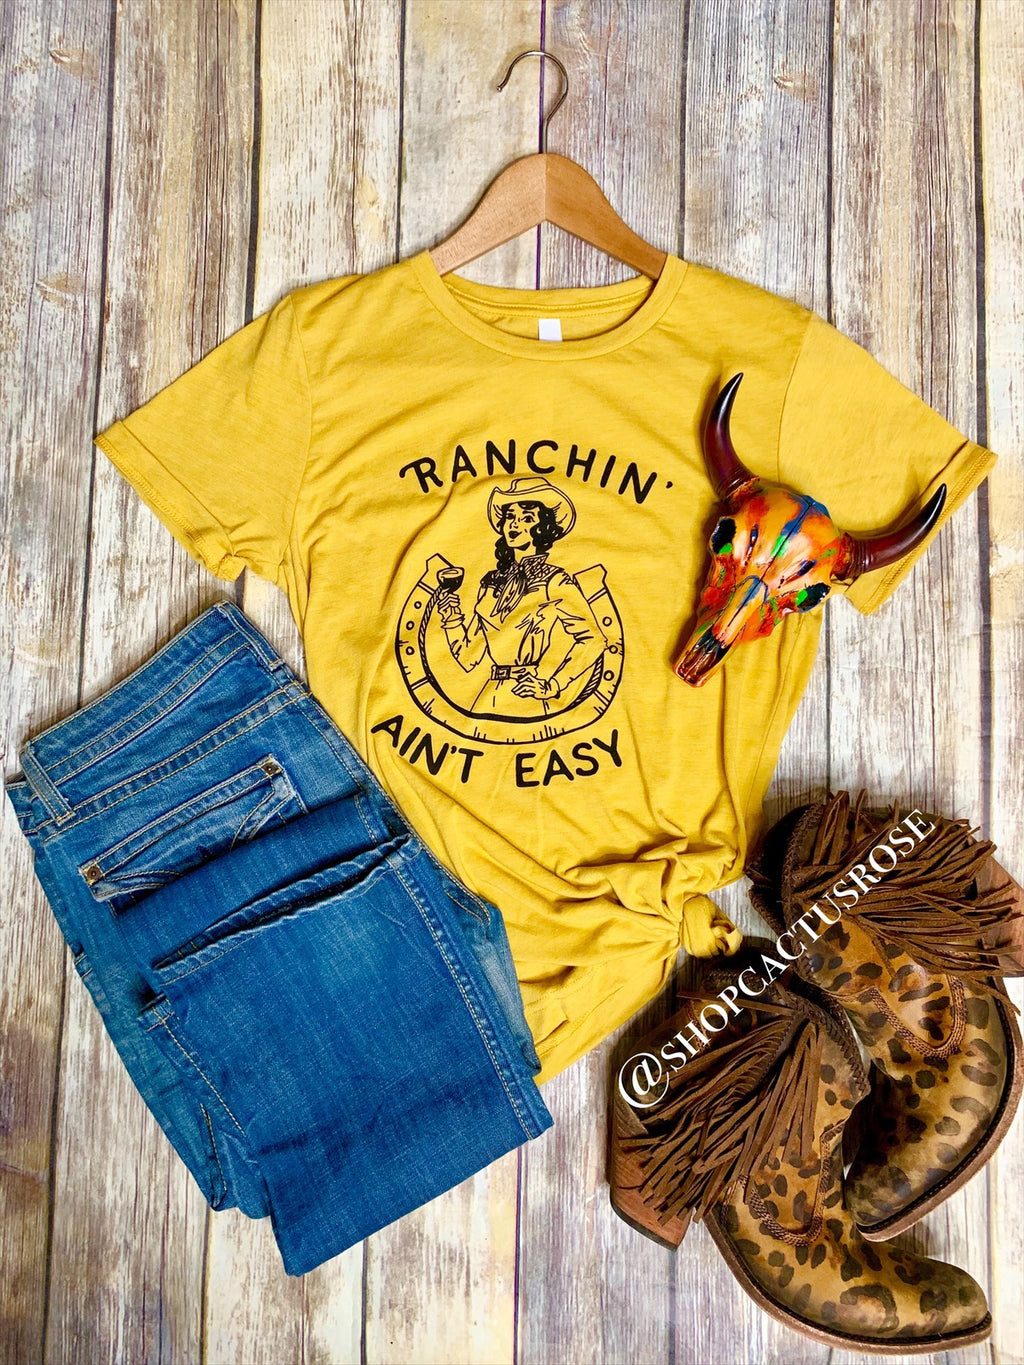 Ranching Ain't Easy Tee